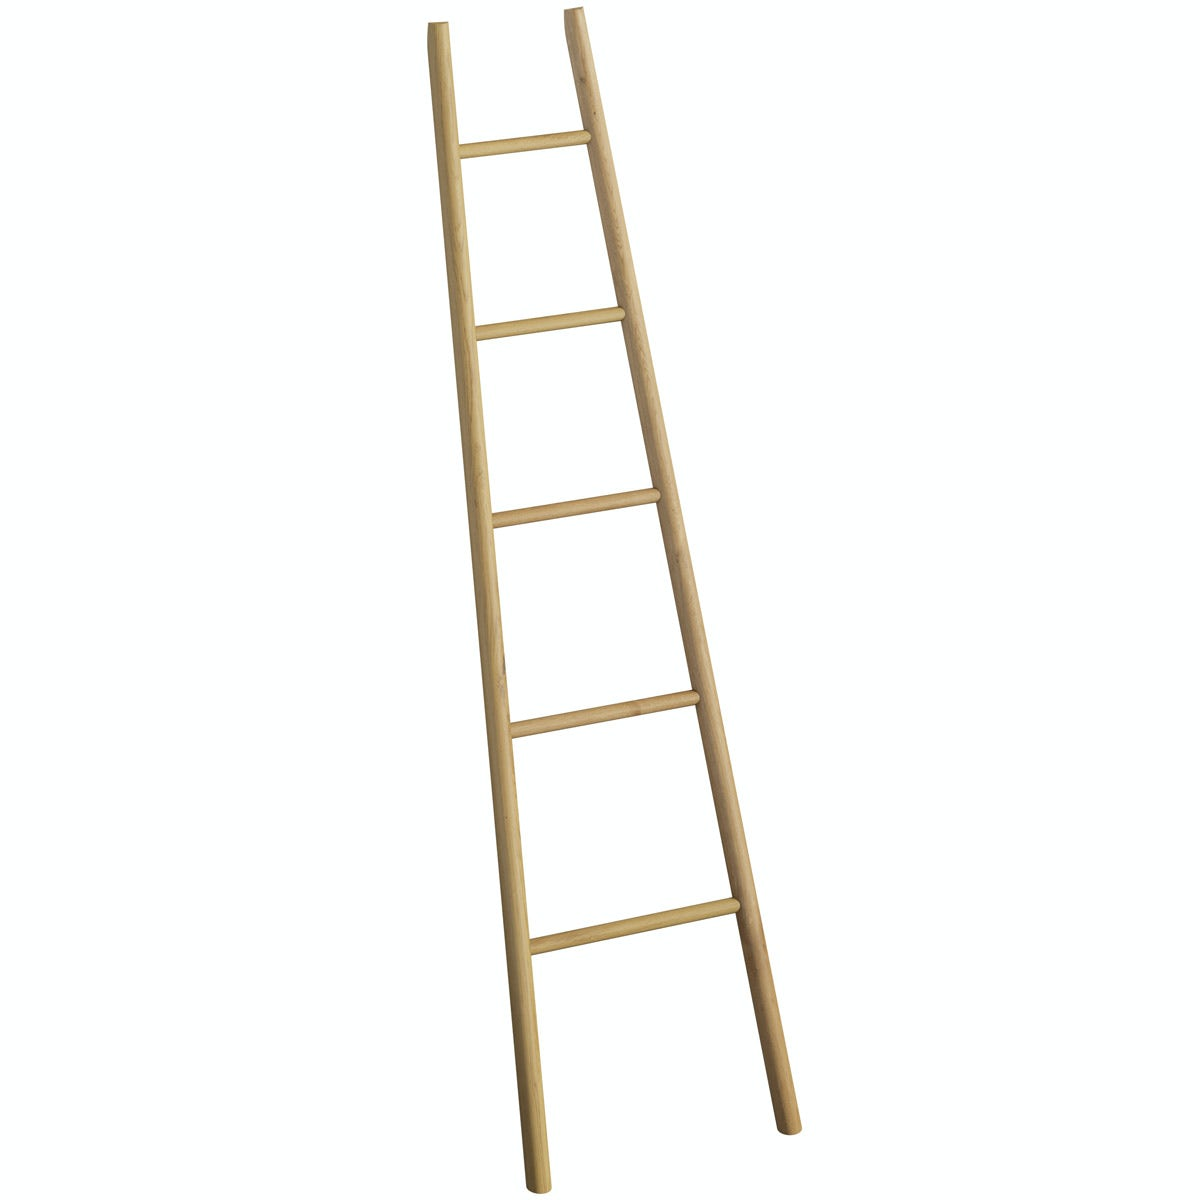 Mode South Bank natural wood towel ladder